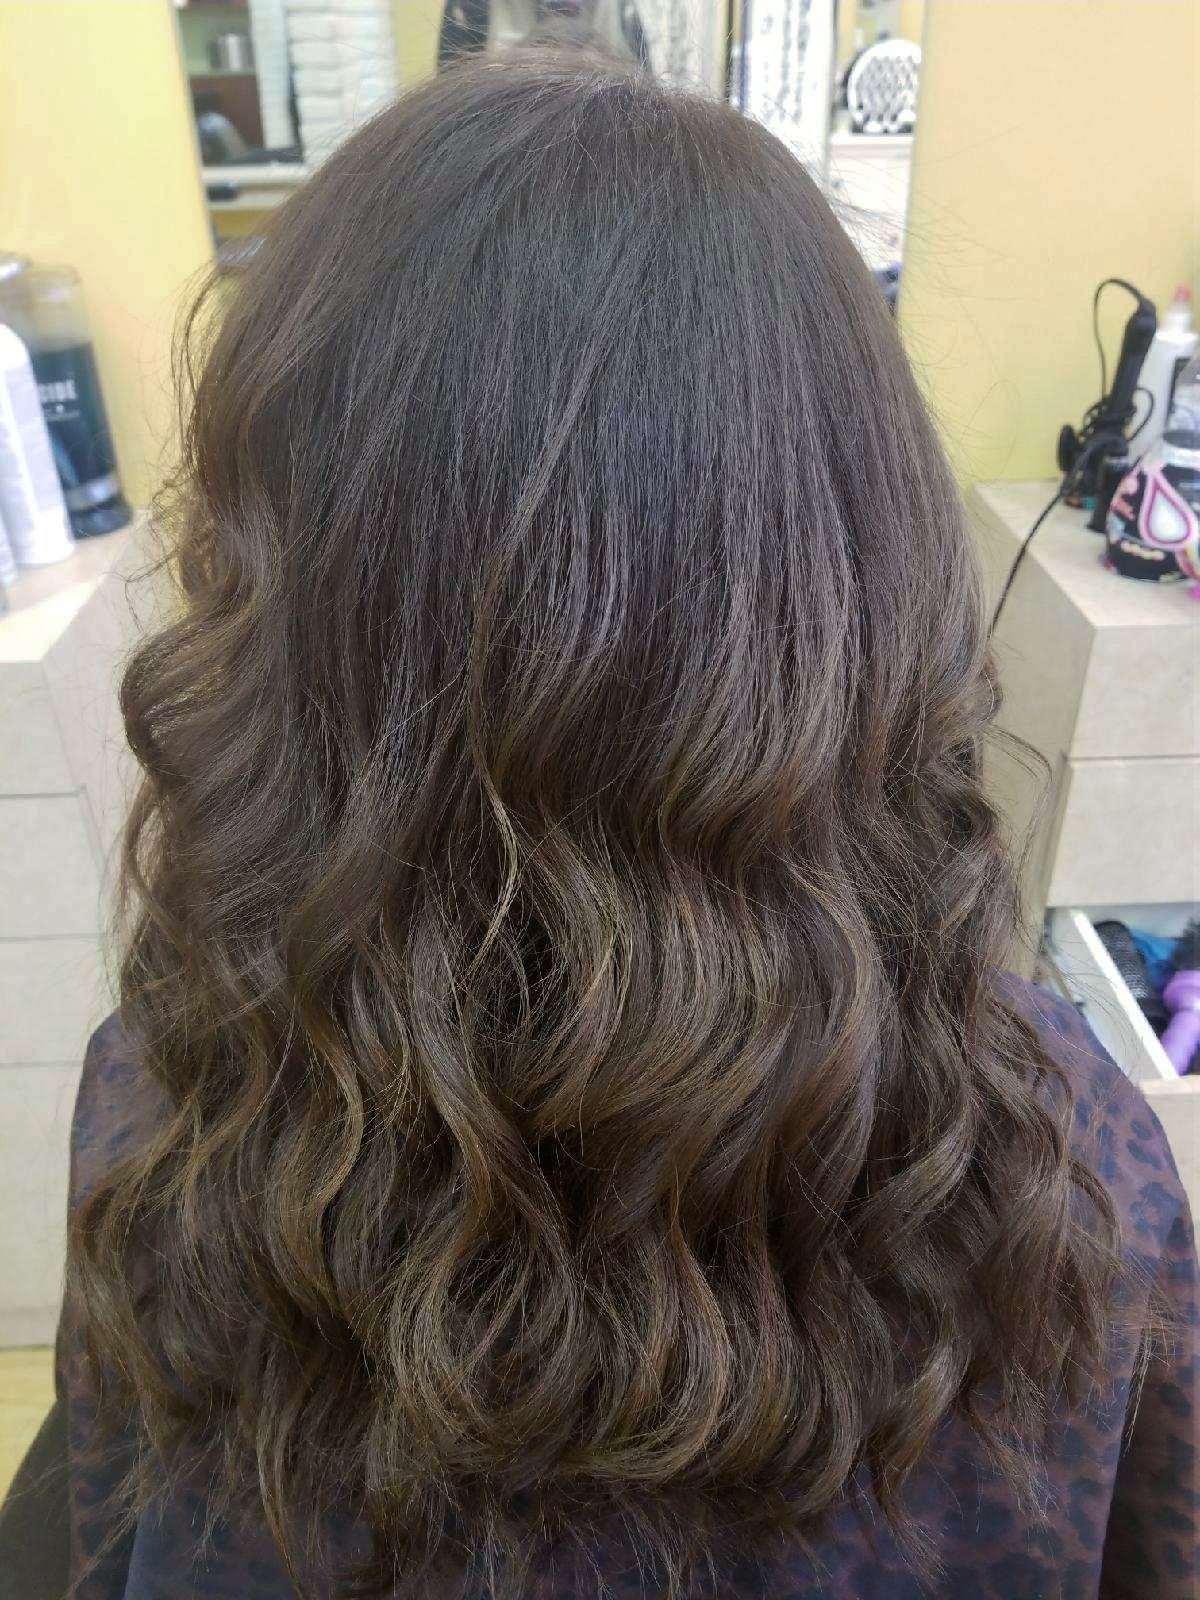 Hair Extensions Springfield NJ